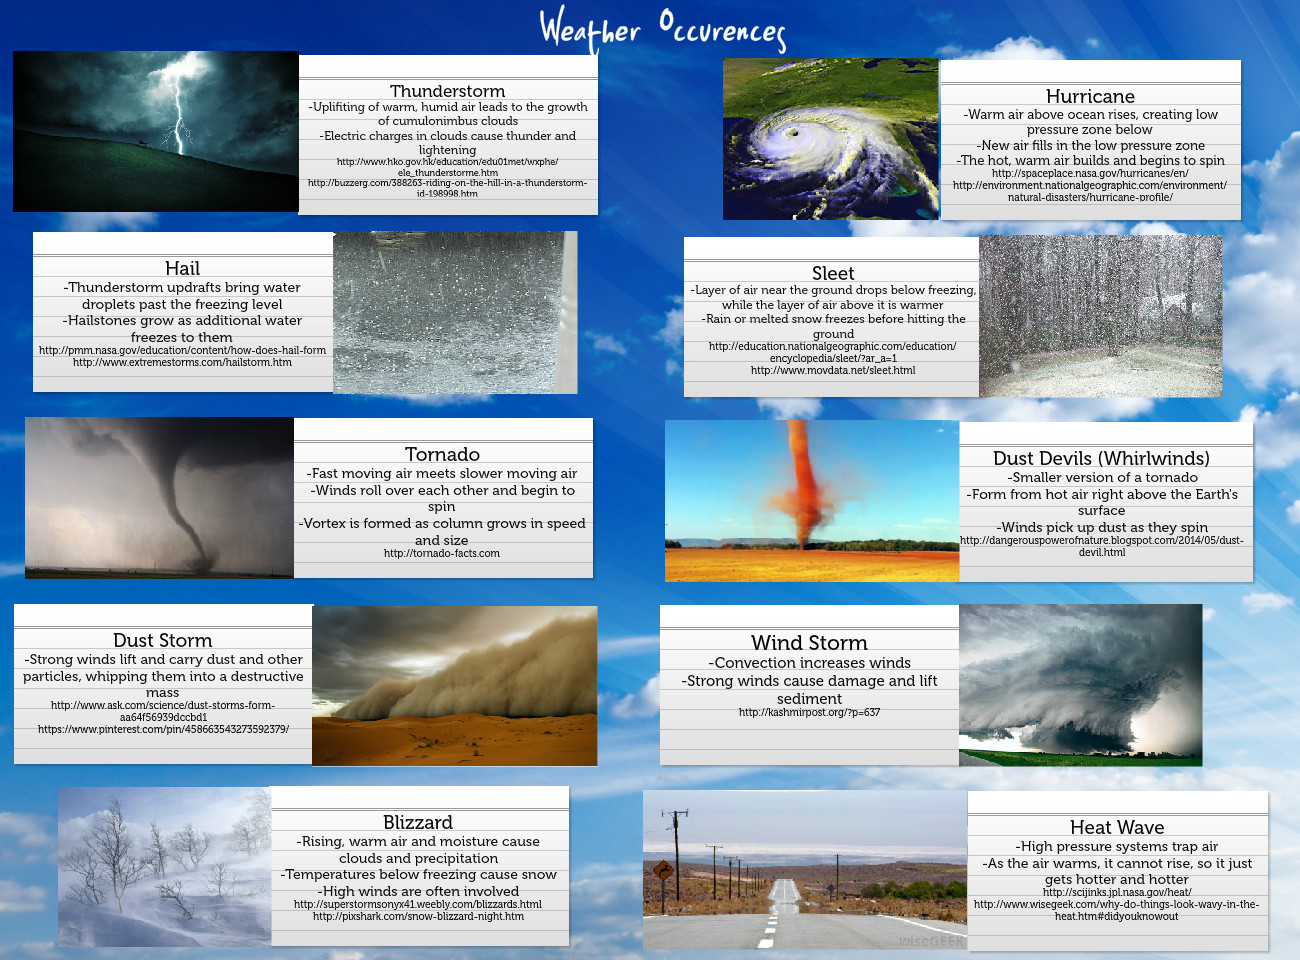 Weather occurences